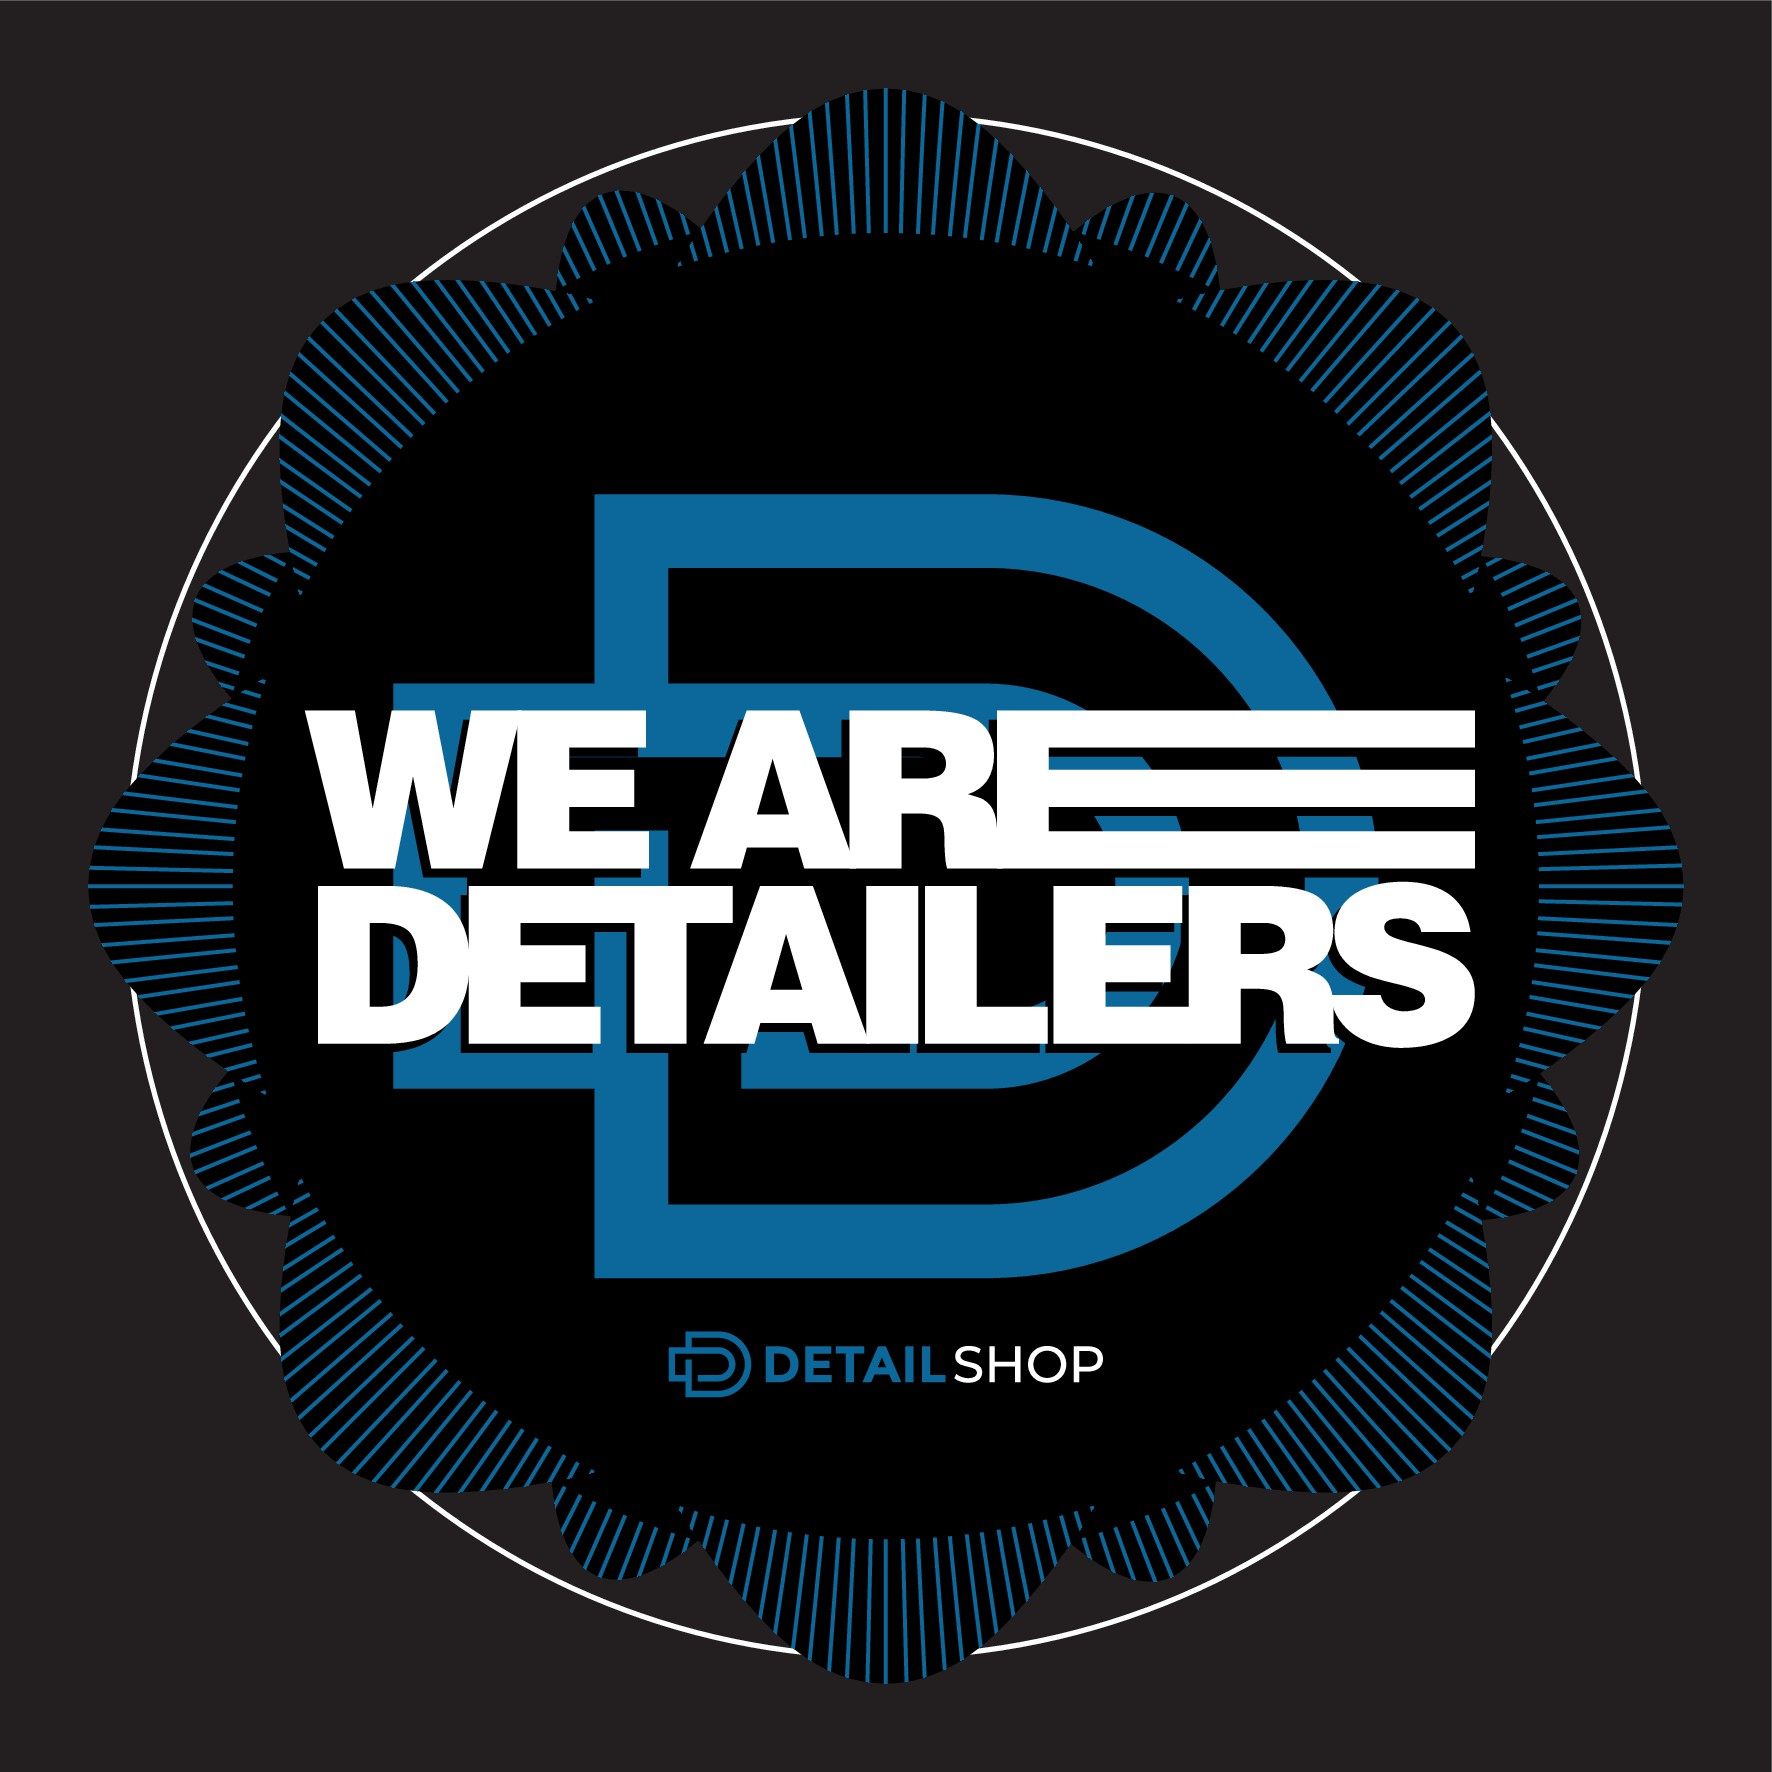 Cool T-shirt design for detailers